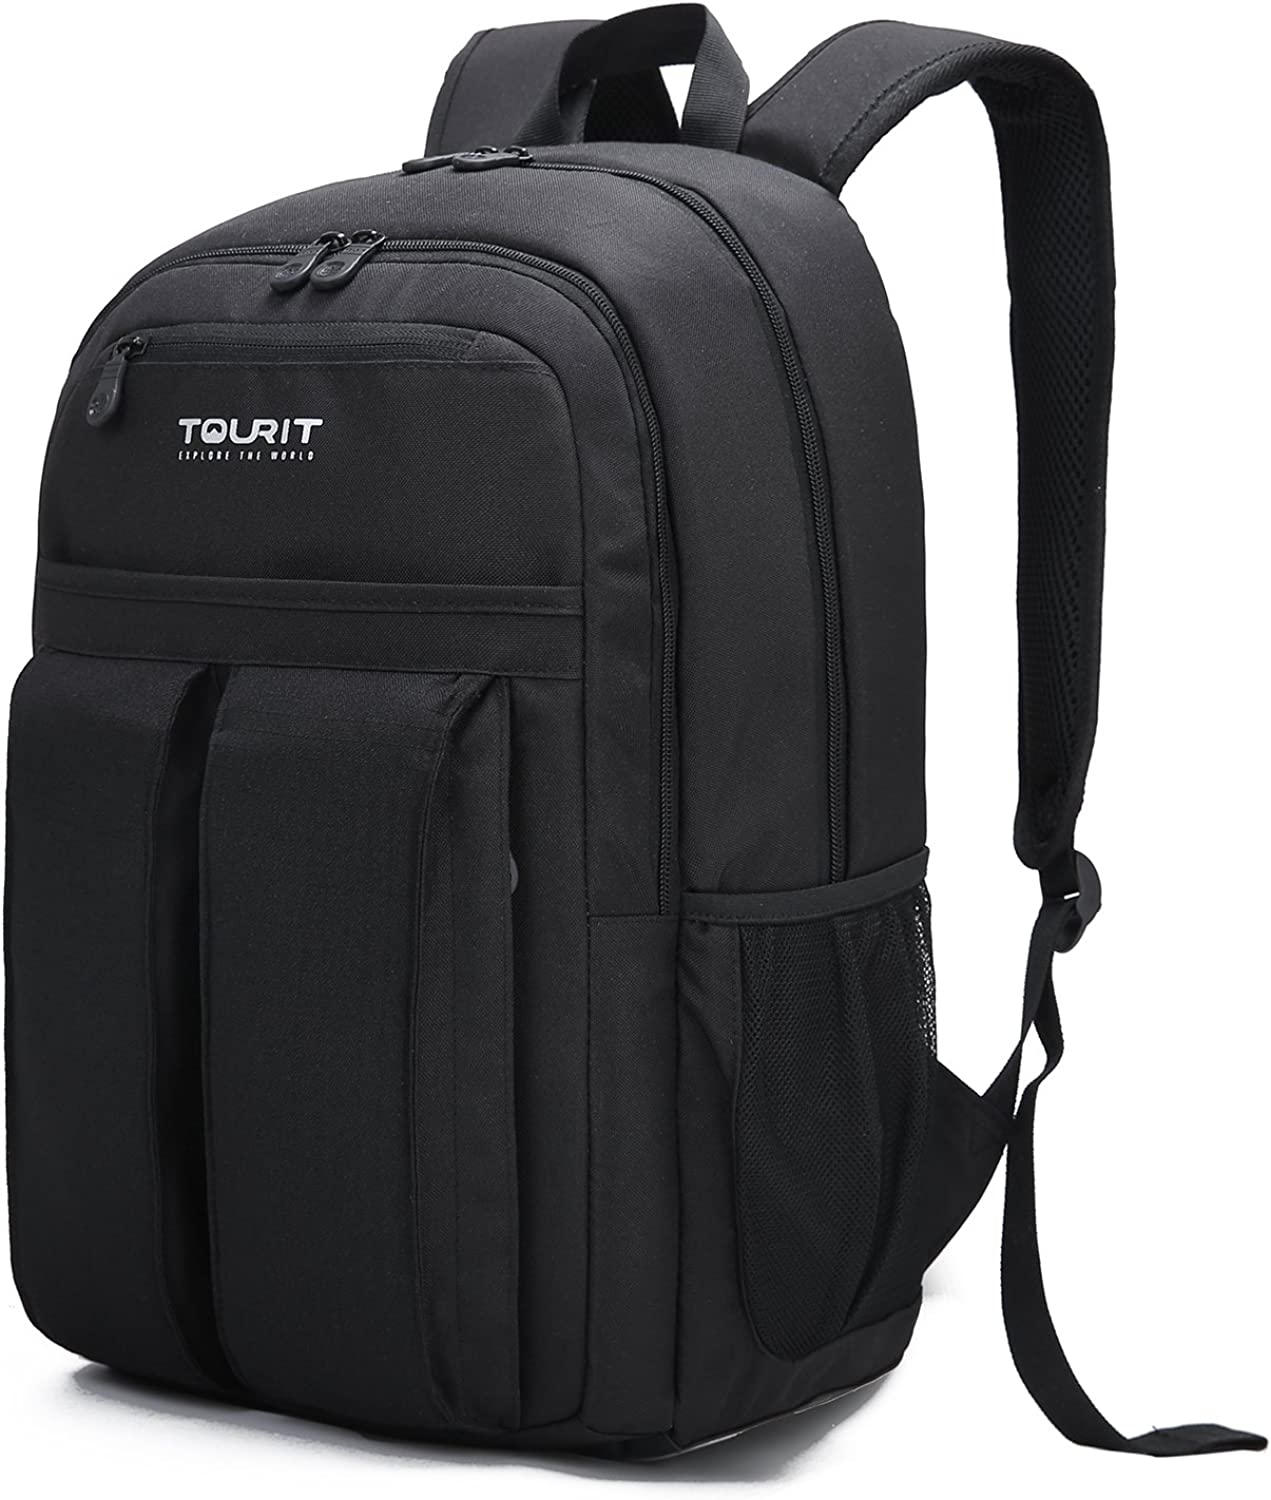 36ee0008bbd3 Insulated Soft TourIt Backpack 28 Black Cans(Tr0260007A001 ...